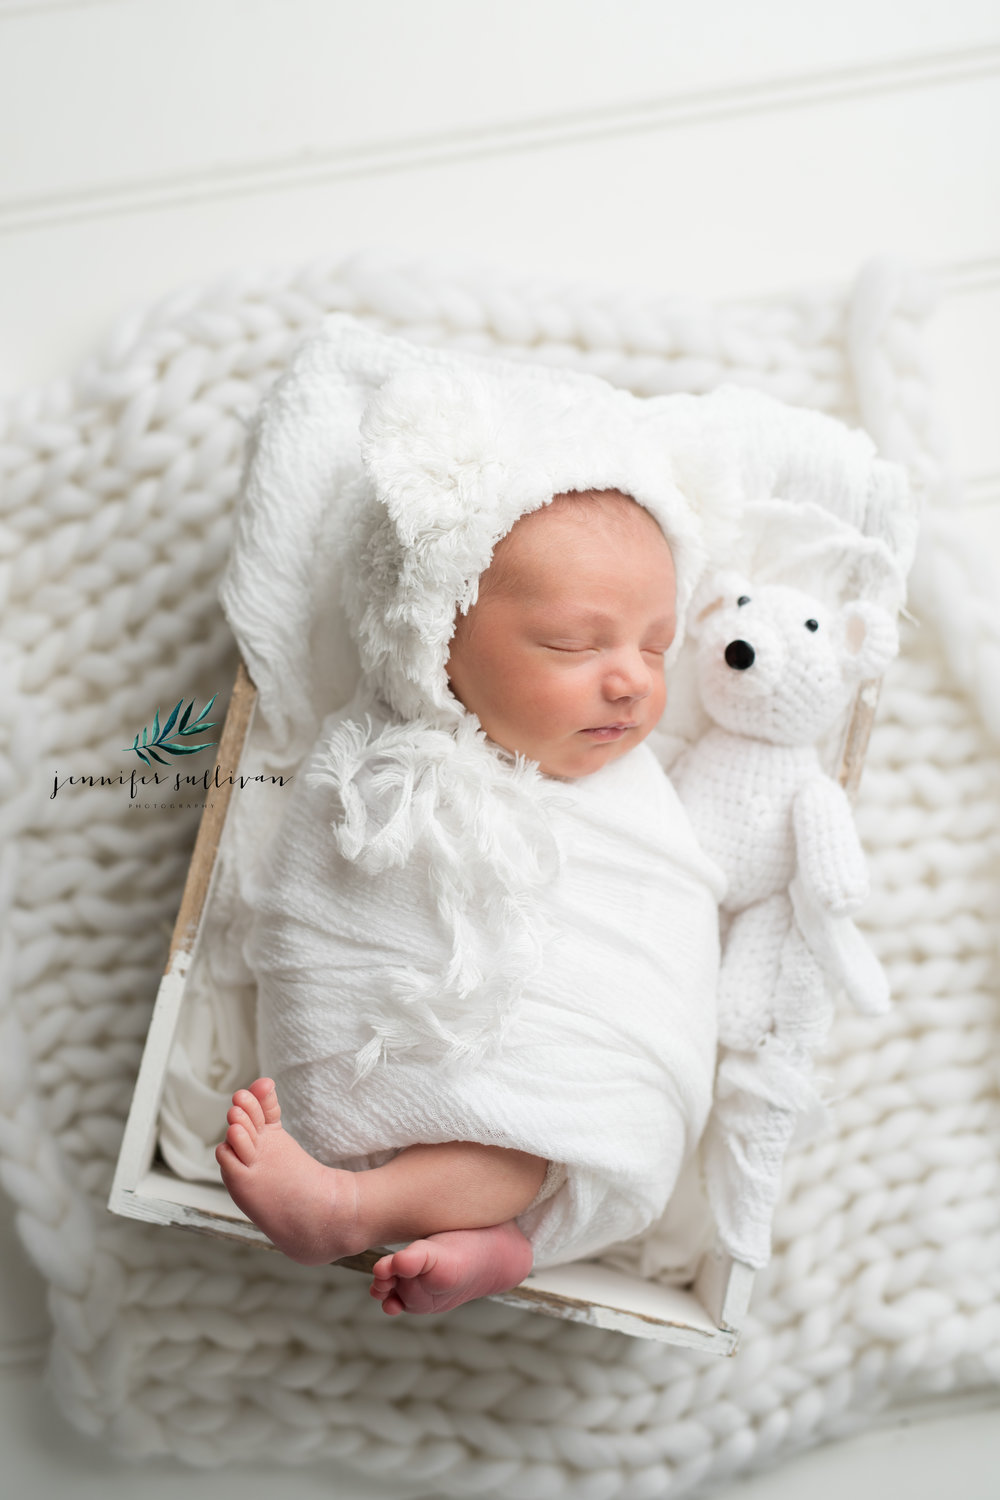 I have all the wraps and blankets and props in my studio that we need for our newborn session. I keep the palate neutral with the focus on the baby and all the little details. Your baby is a work of art and should be displayed in your home. With neutral colors, your images can be displayed anywhere.